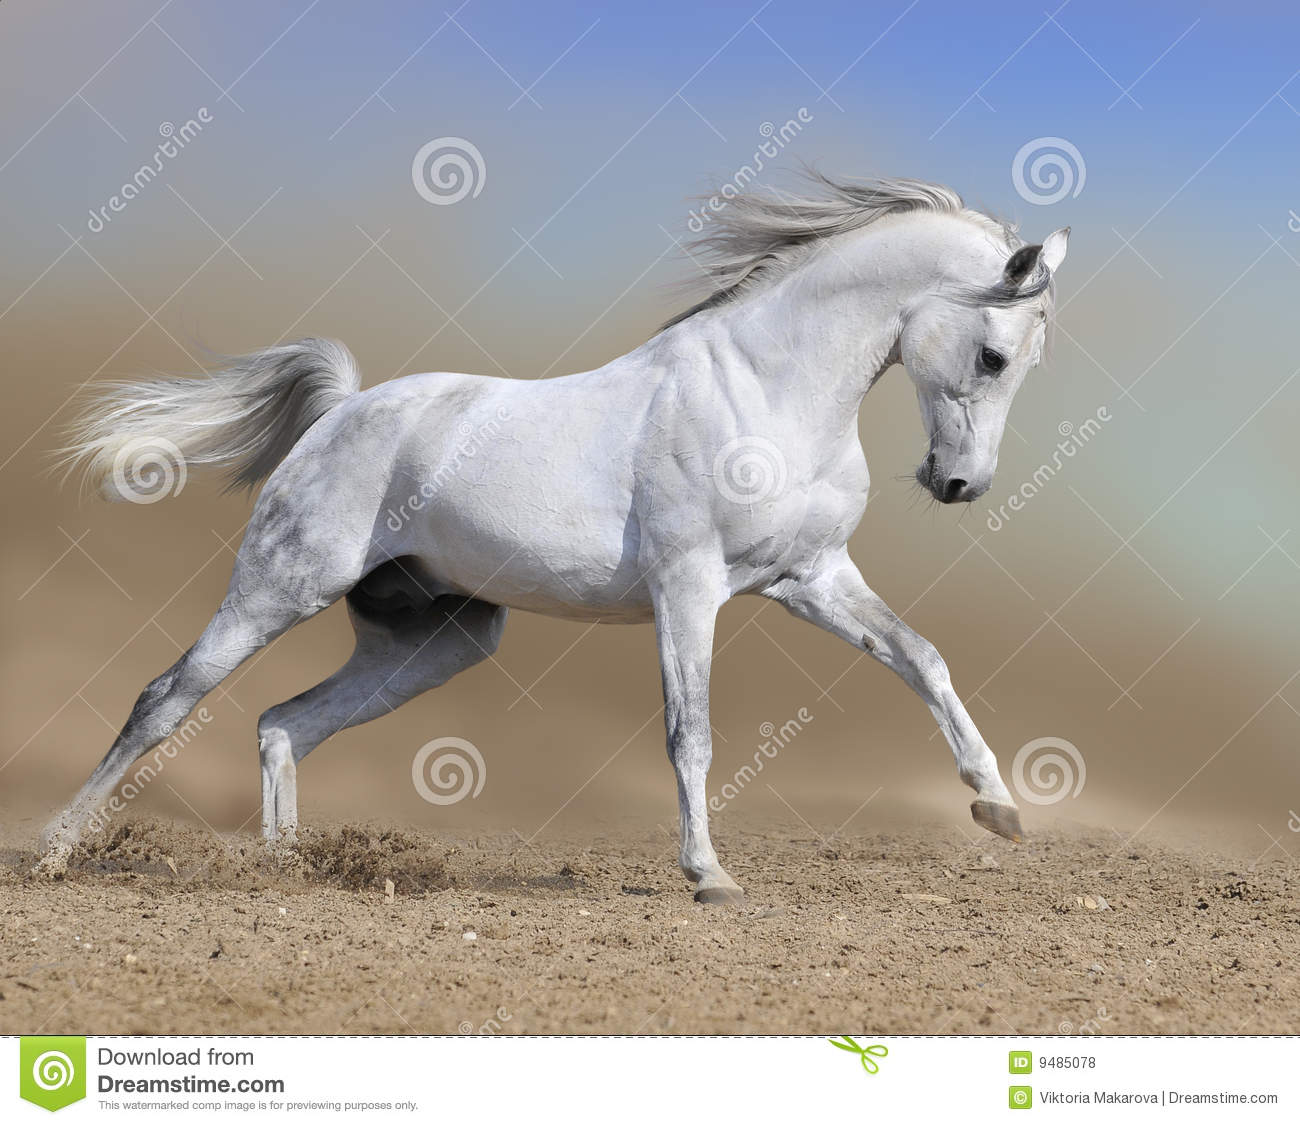 White Arabian Horse Runs Gallop In Dust Desert Stock Photo Image Of Sand Horse 9485078